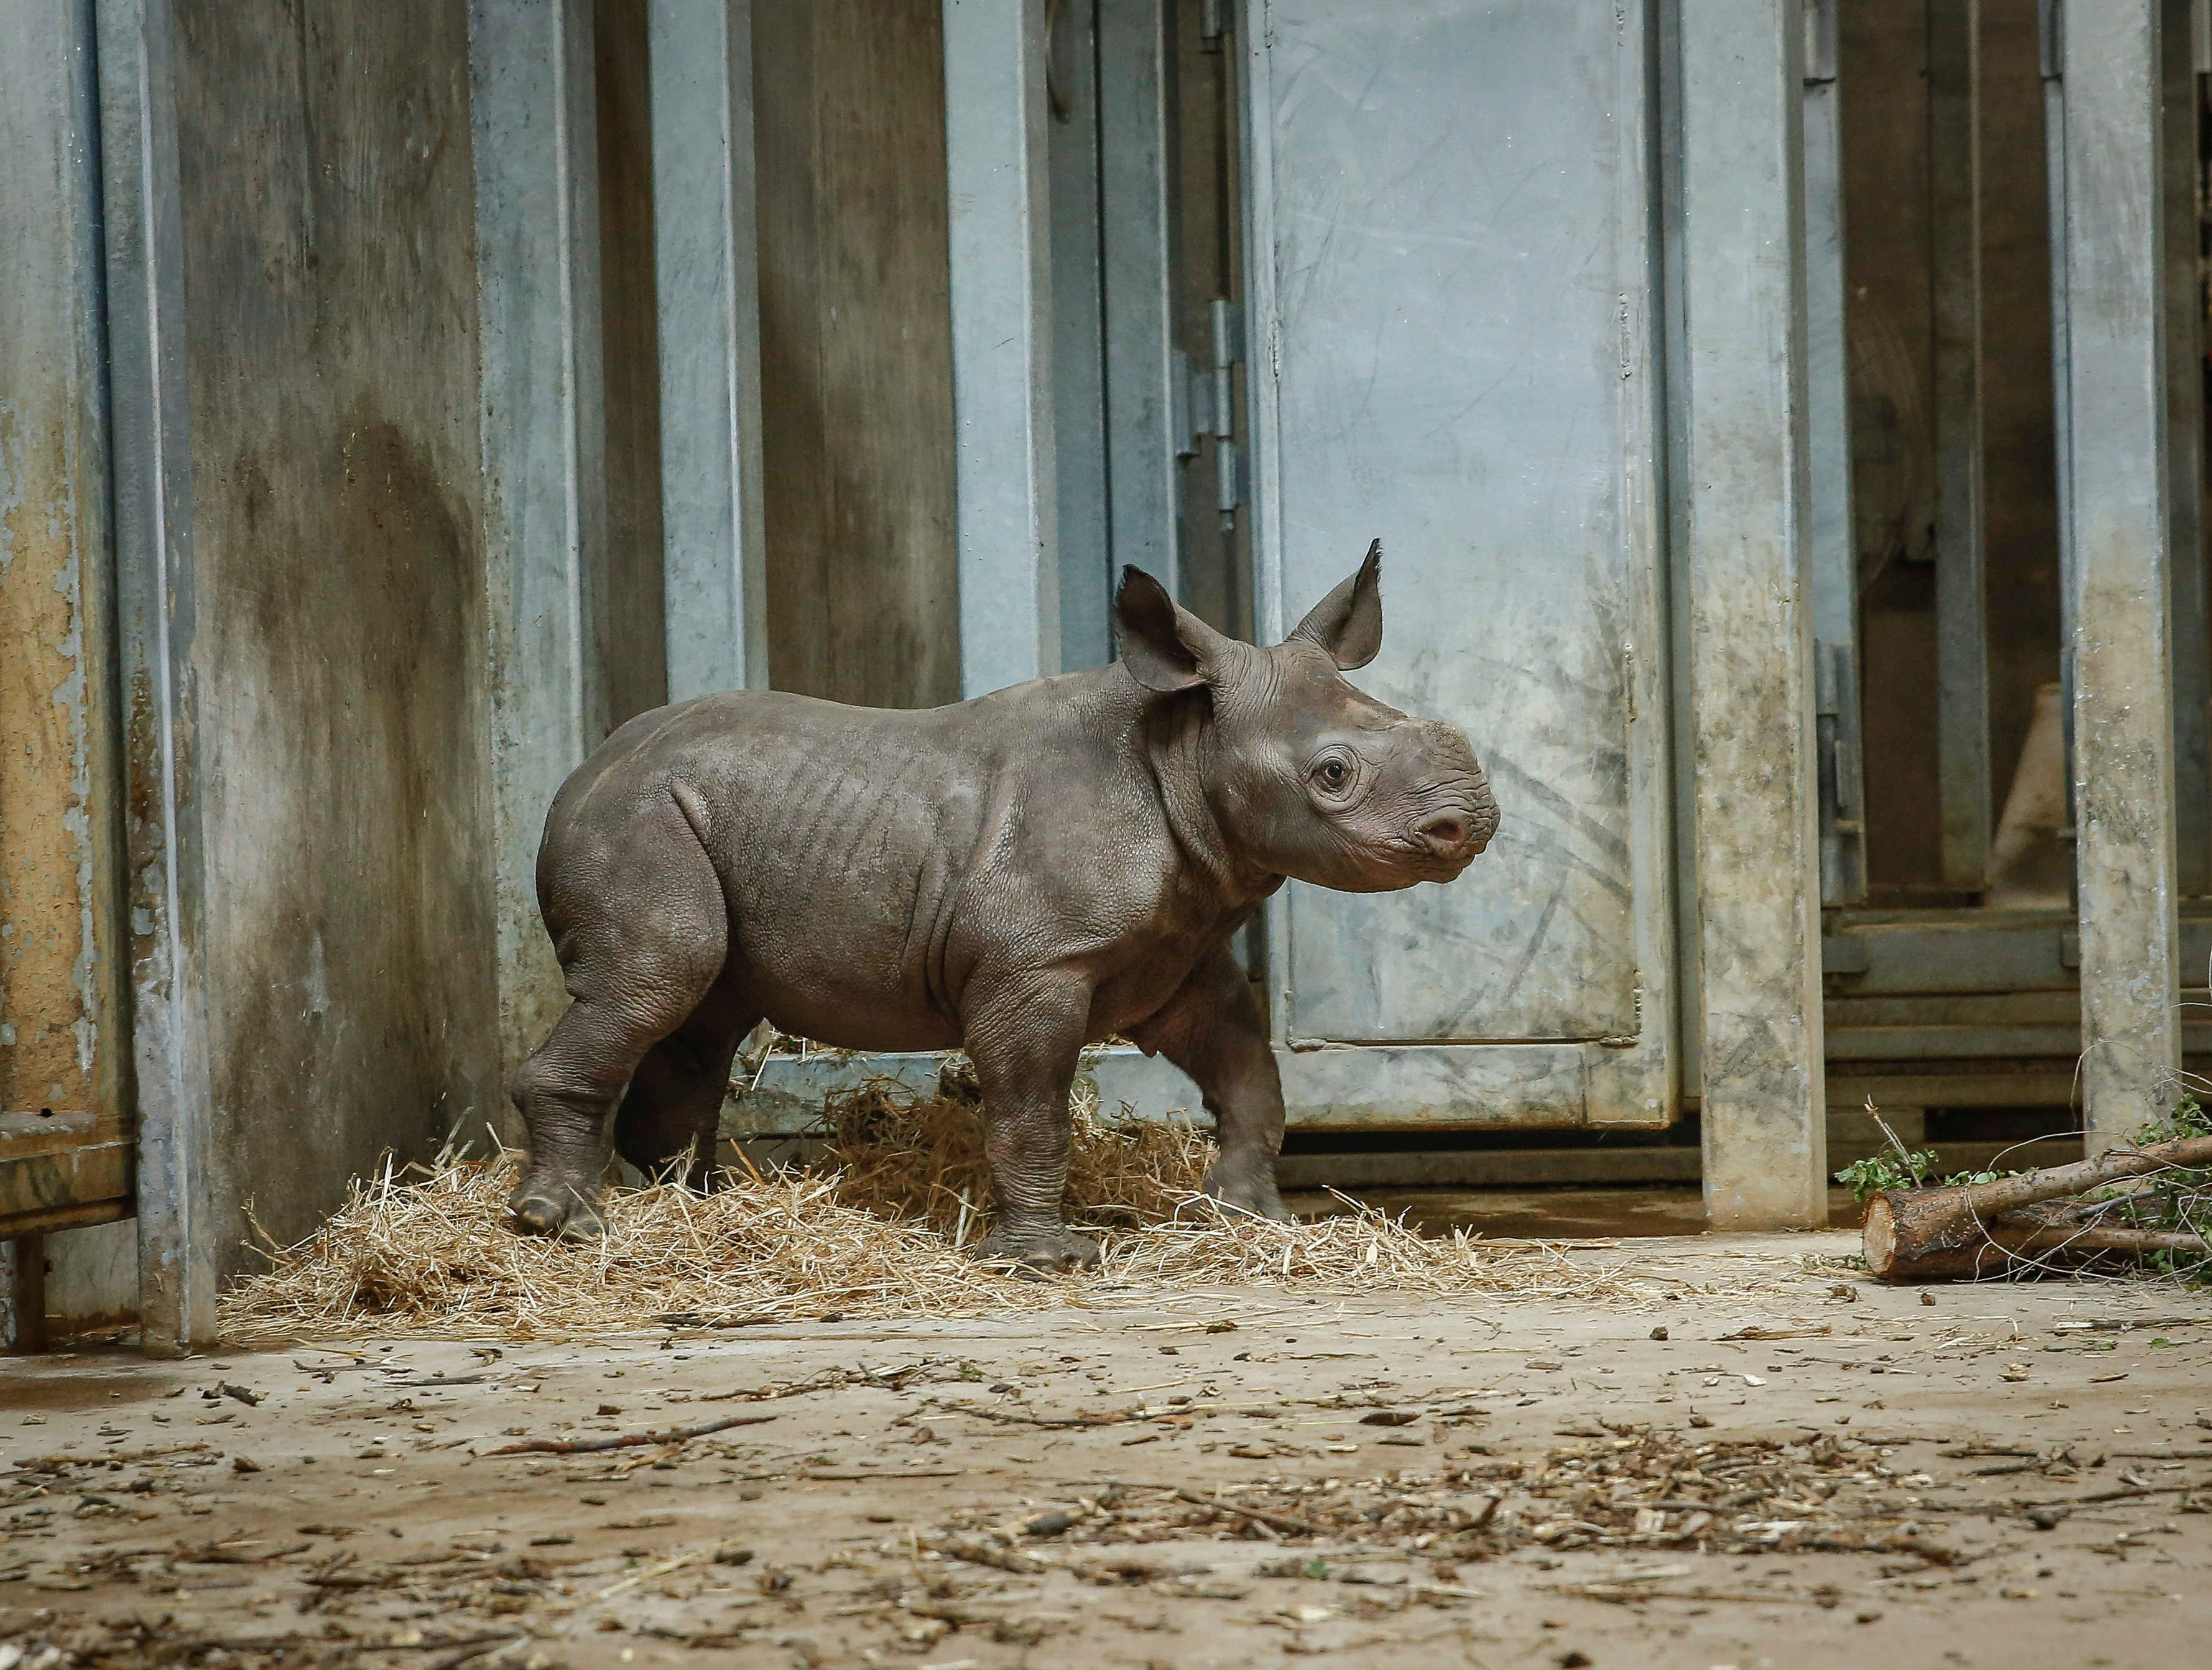 Kamara, a baby rhinoceros, takes a break from pacing the display on Saturday, May 11, 2019, at the Blank Park Zoo in Des Moines. It was the first day the public got to get a personal look at Kamara, who was born on April 5.